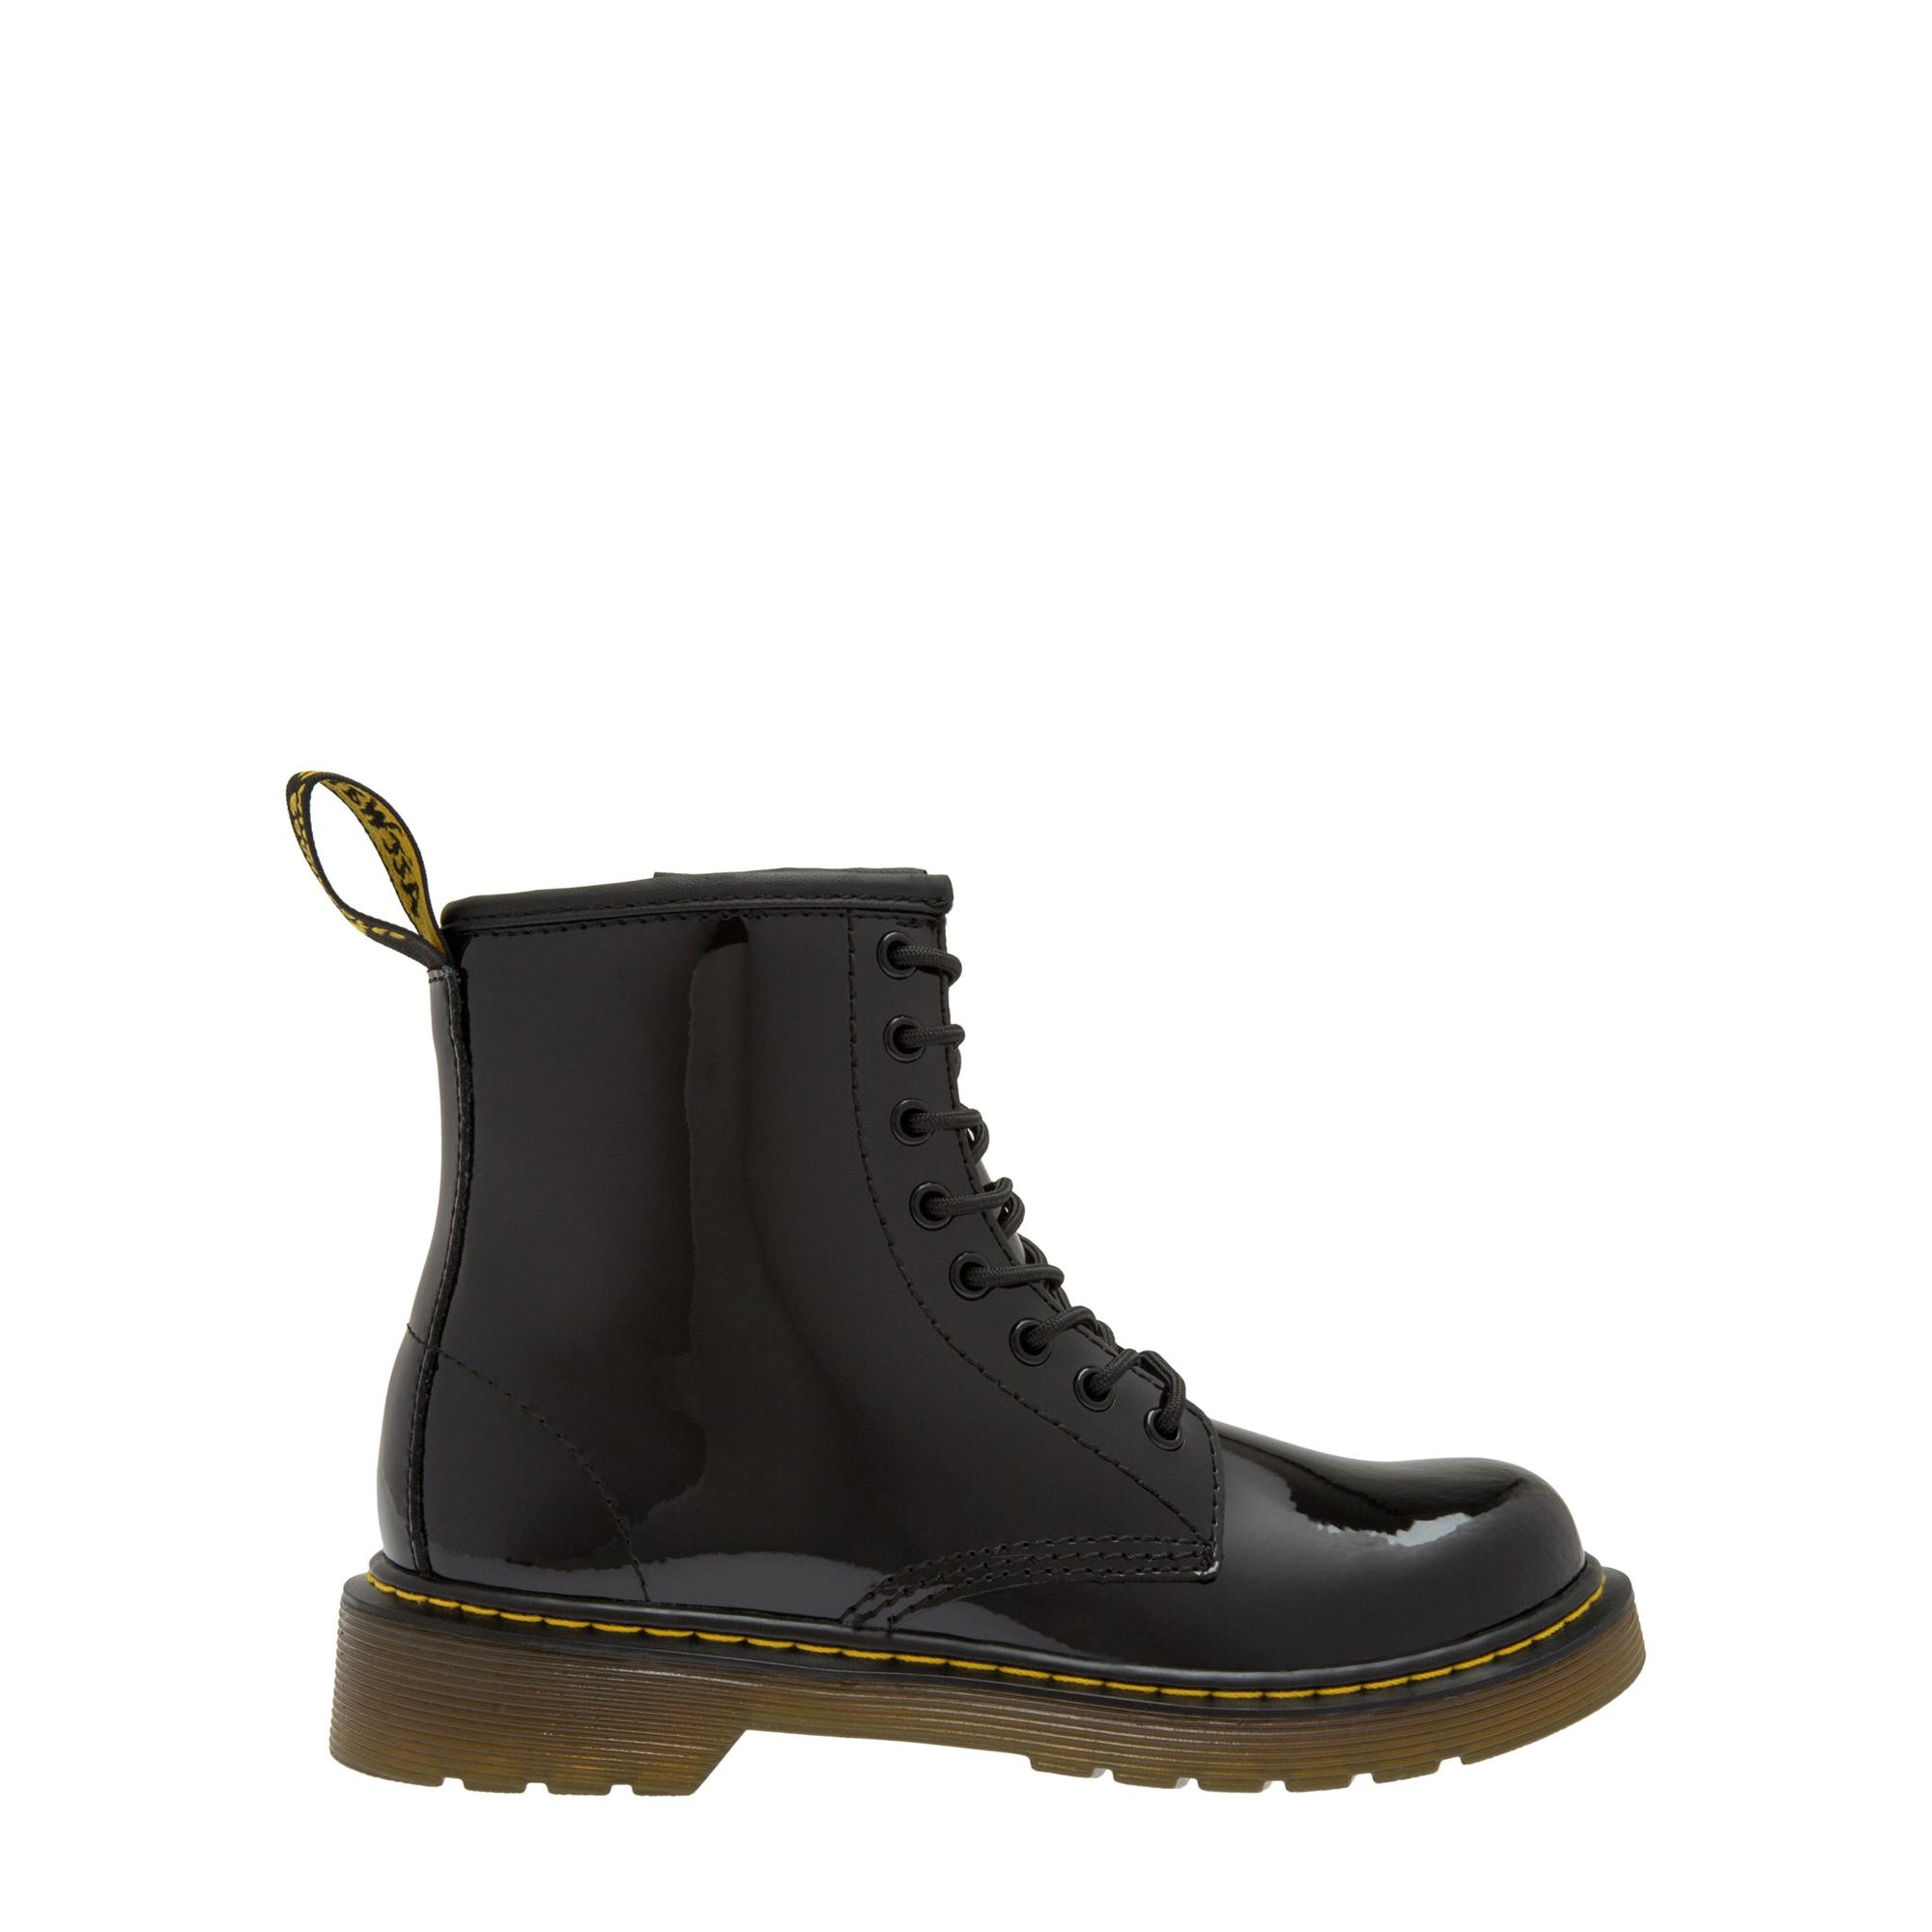 1460 patent boots